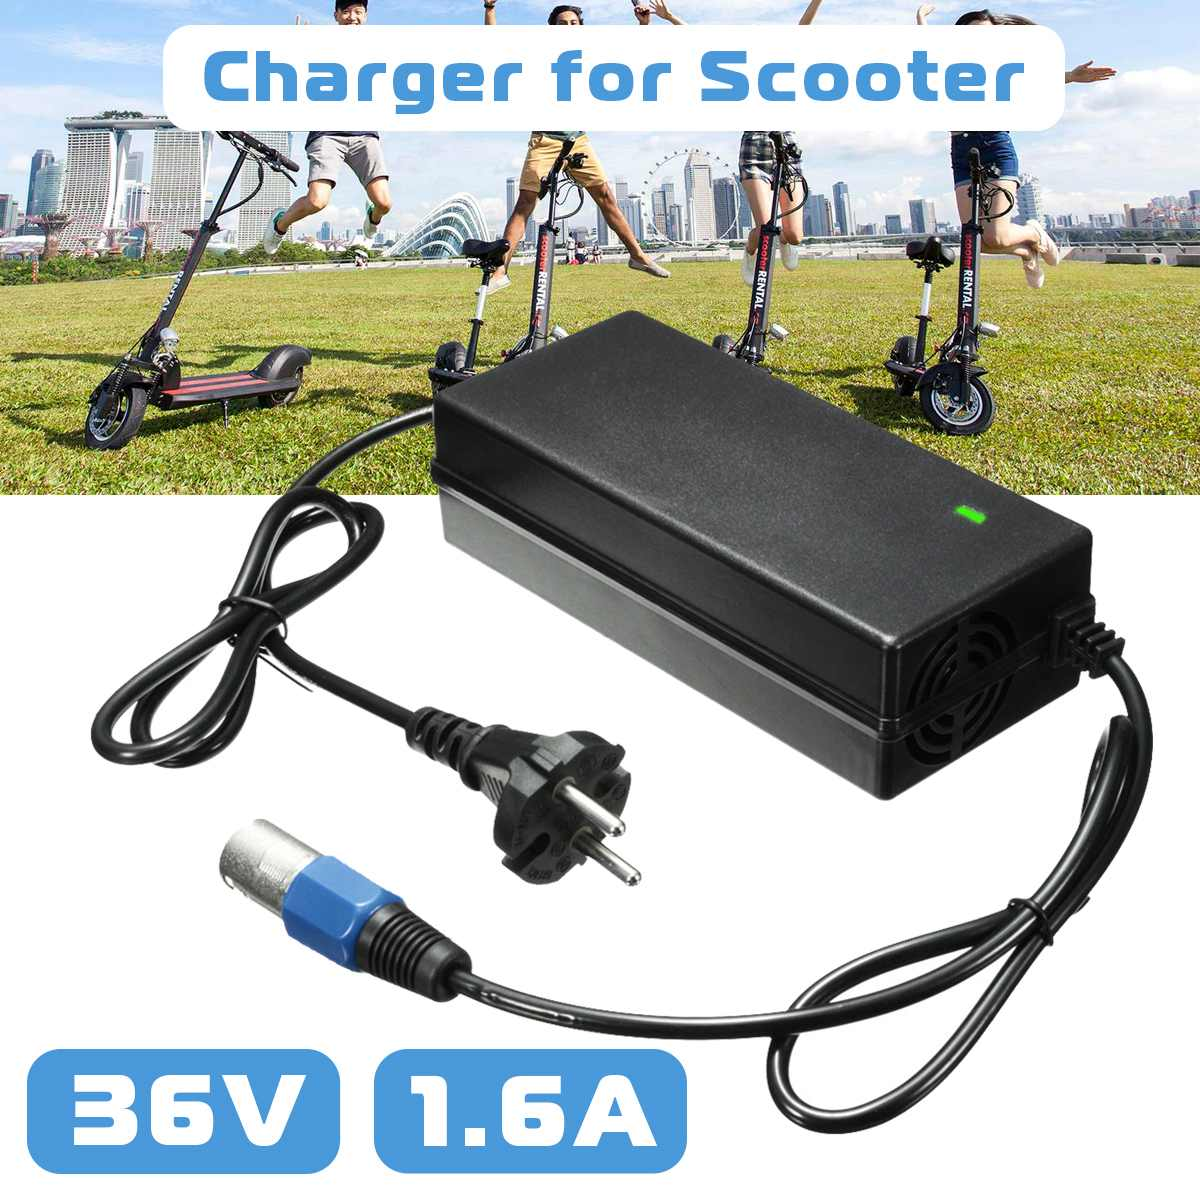 36 Volt <font><b>36V</b></font> 1.6A 3 Male Connector Lead Acid <font><b>Electric</b></font> <font><b>Battery</b></font> <font><b>Charger</b></font> Cable For Scooter <font><b>Bike</b></font> IZIP I-750 I-1000 Sereno eZip 1000 image